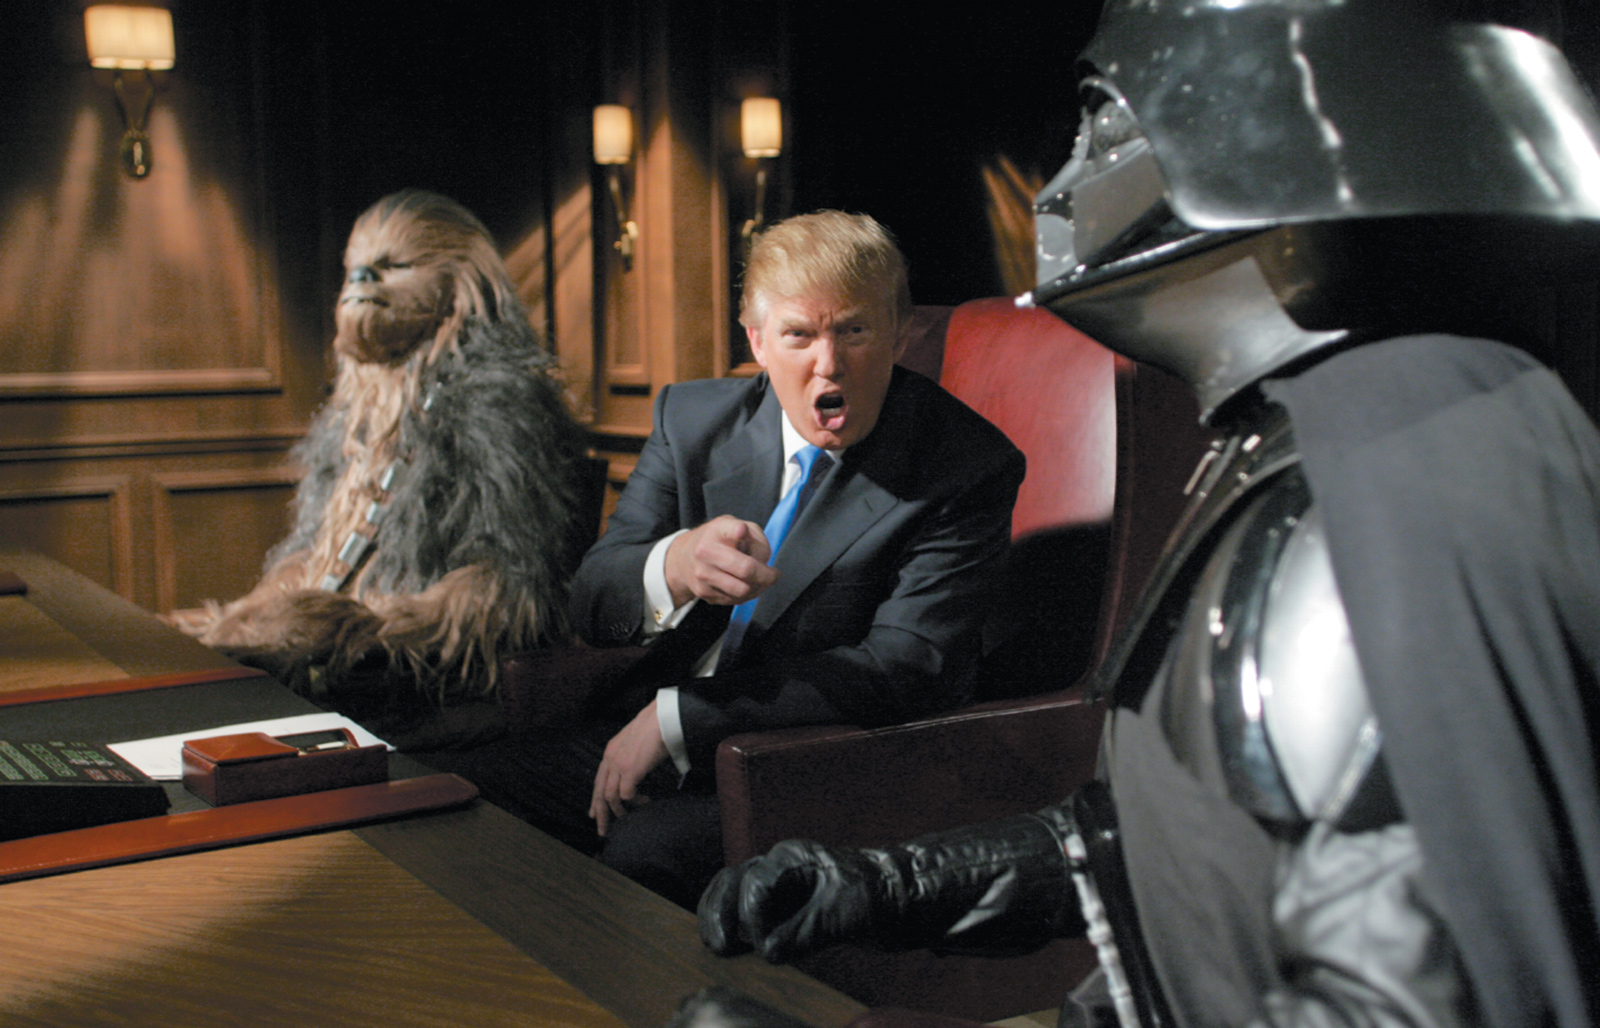 Donald Trump with Chewbacca and Darth Vader in a Star Wars–themed episode of The Apprentice, 2005